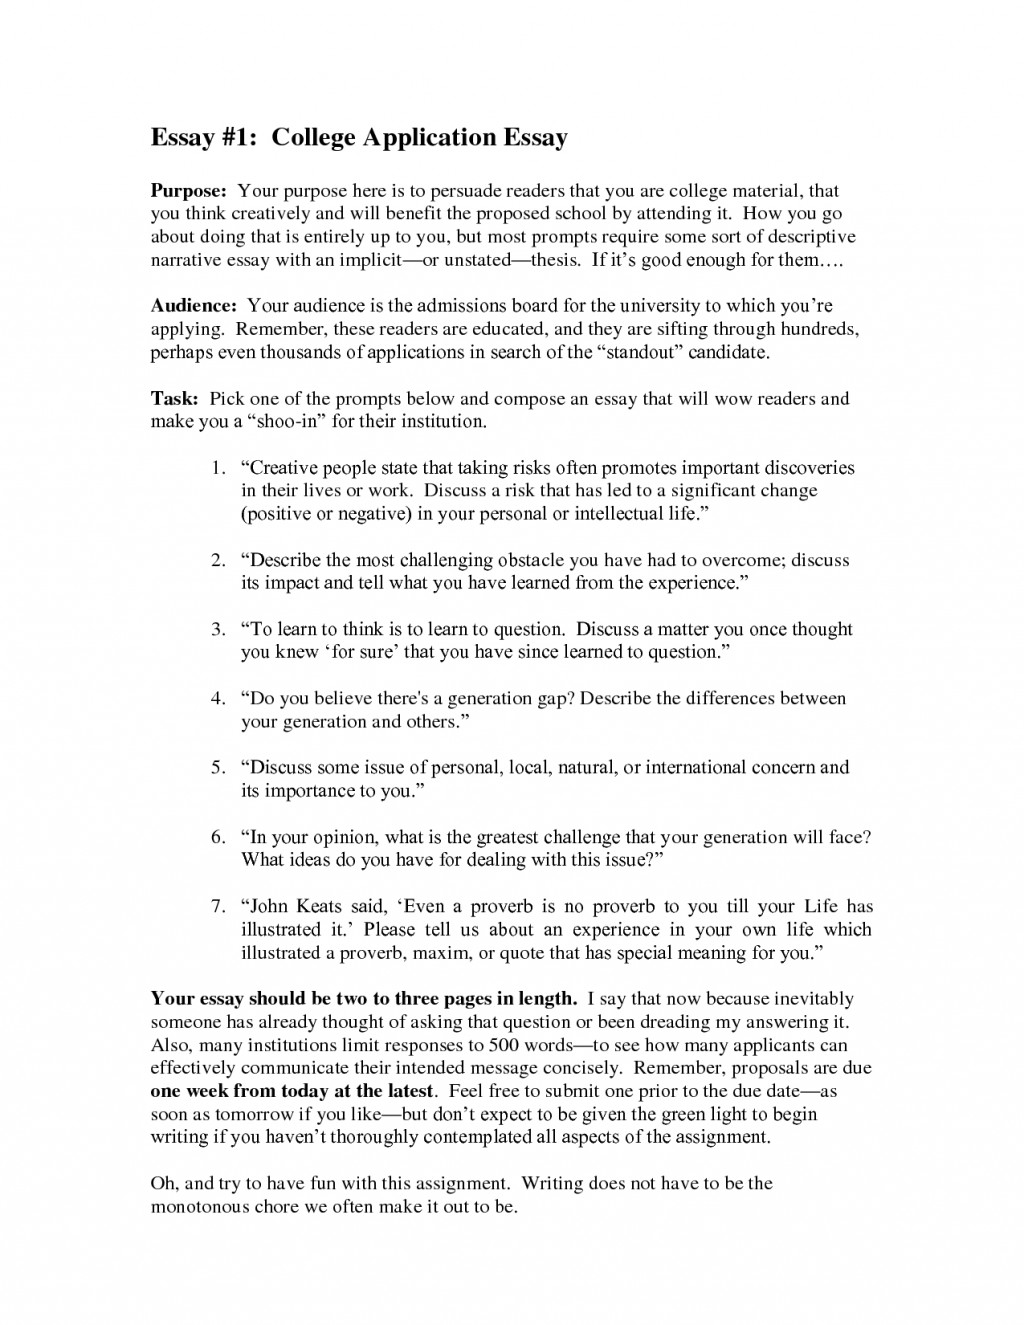 002 Essay Example Collegepplication How To Format Awesome A College Application Set Up My Your Large